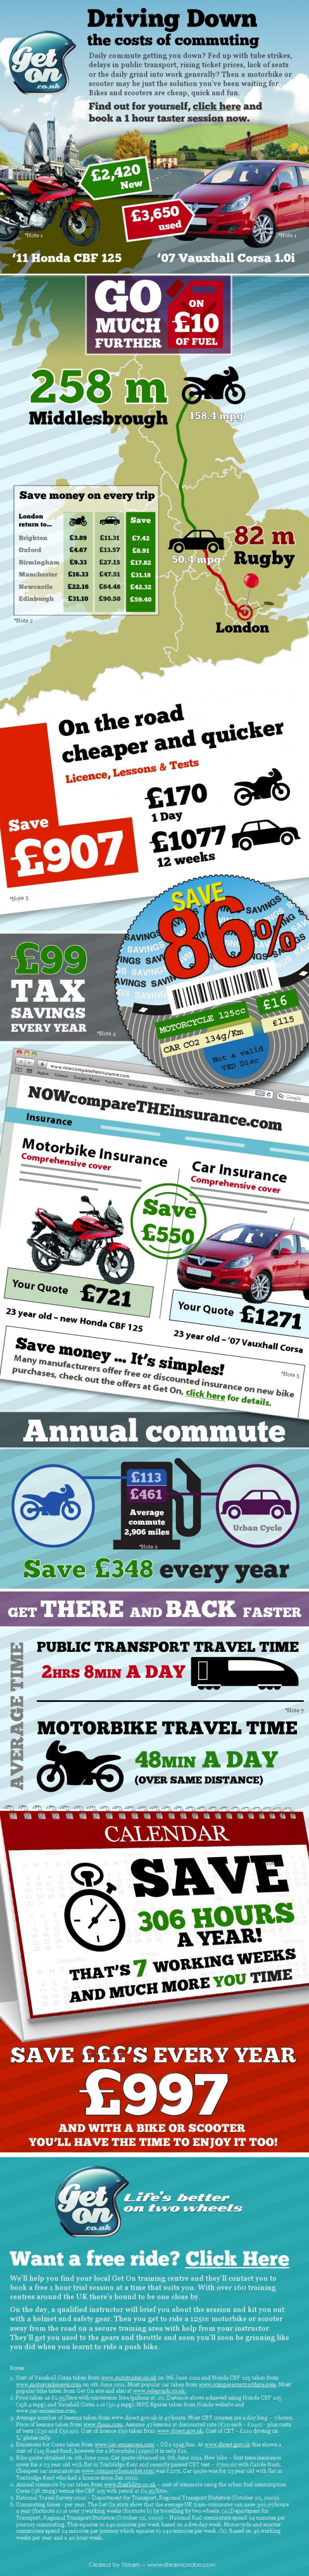 Car v Motorbike: The True Cost of Commuting Infographic